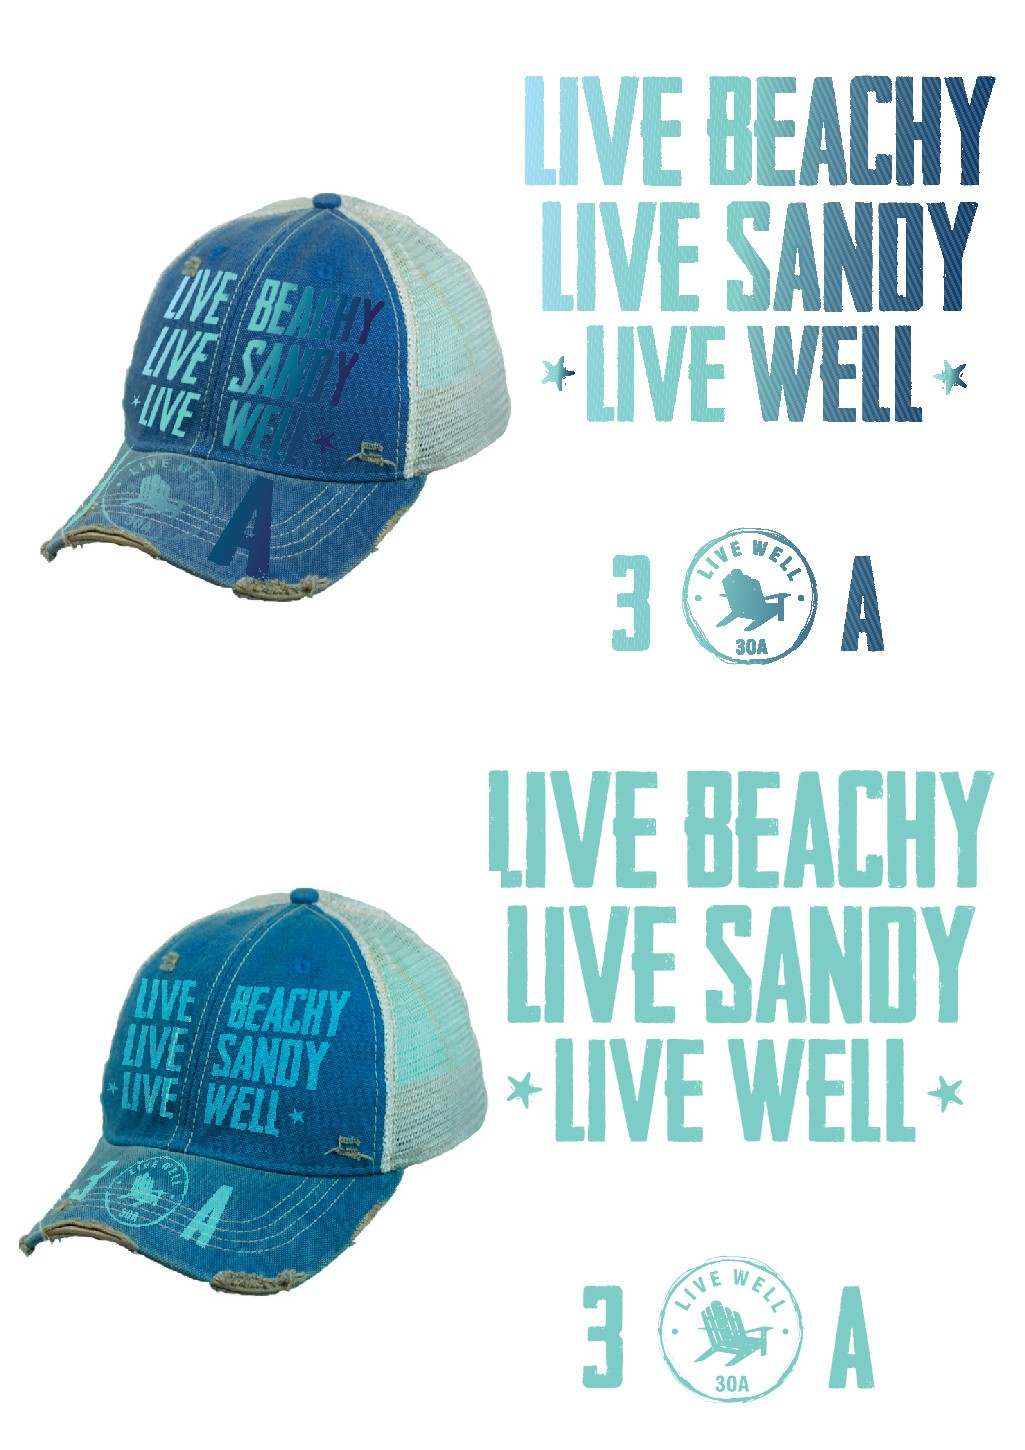 Design a hat to be sold on 30A!